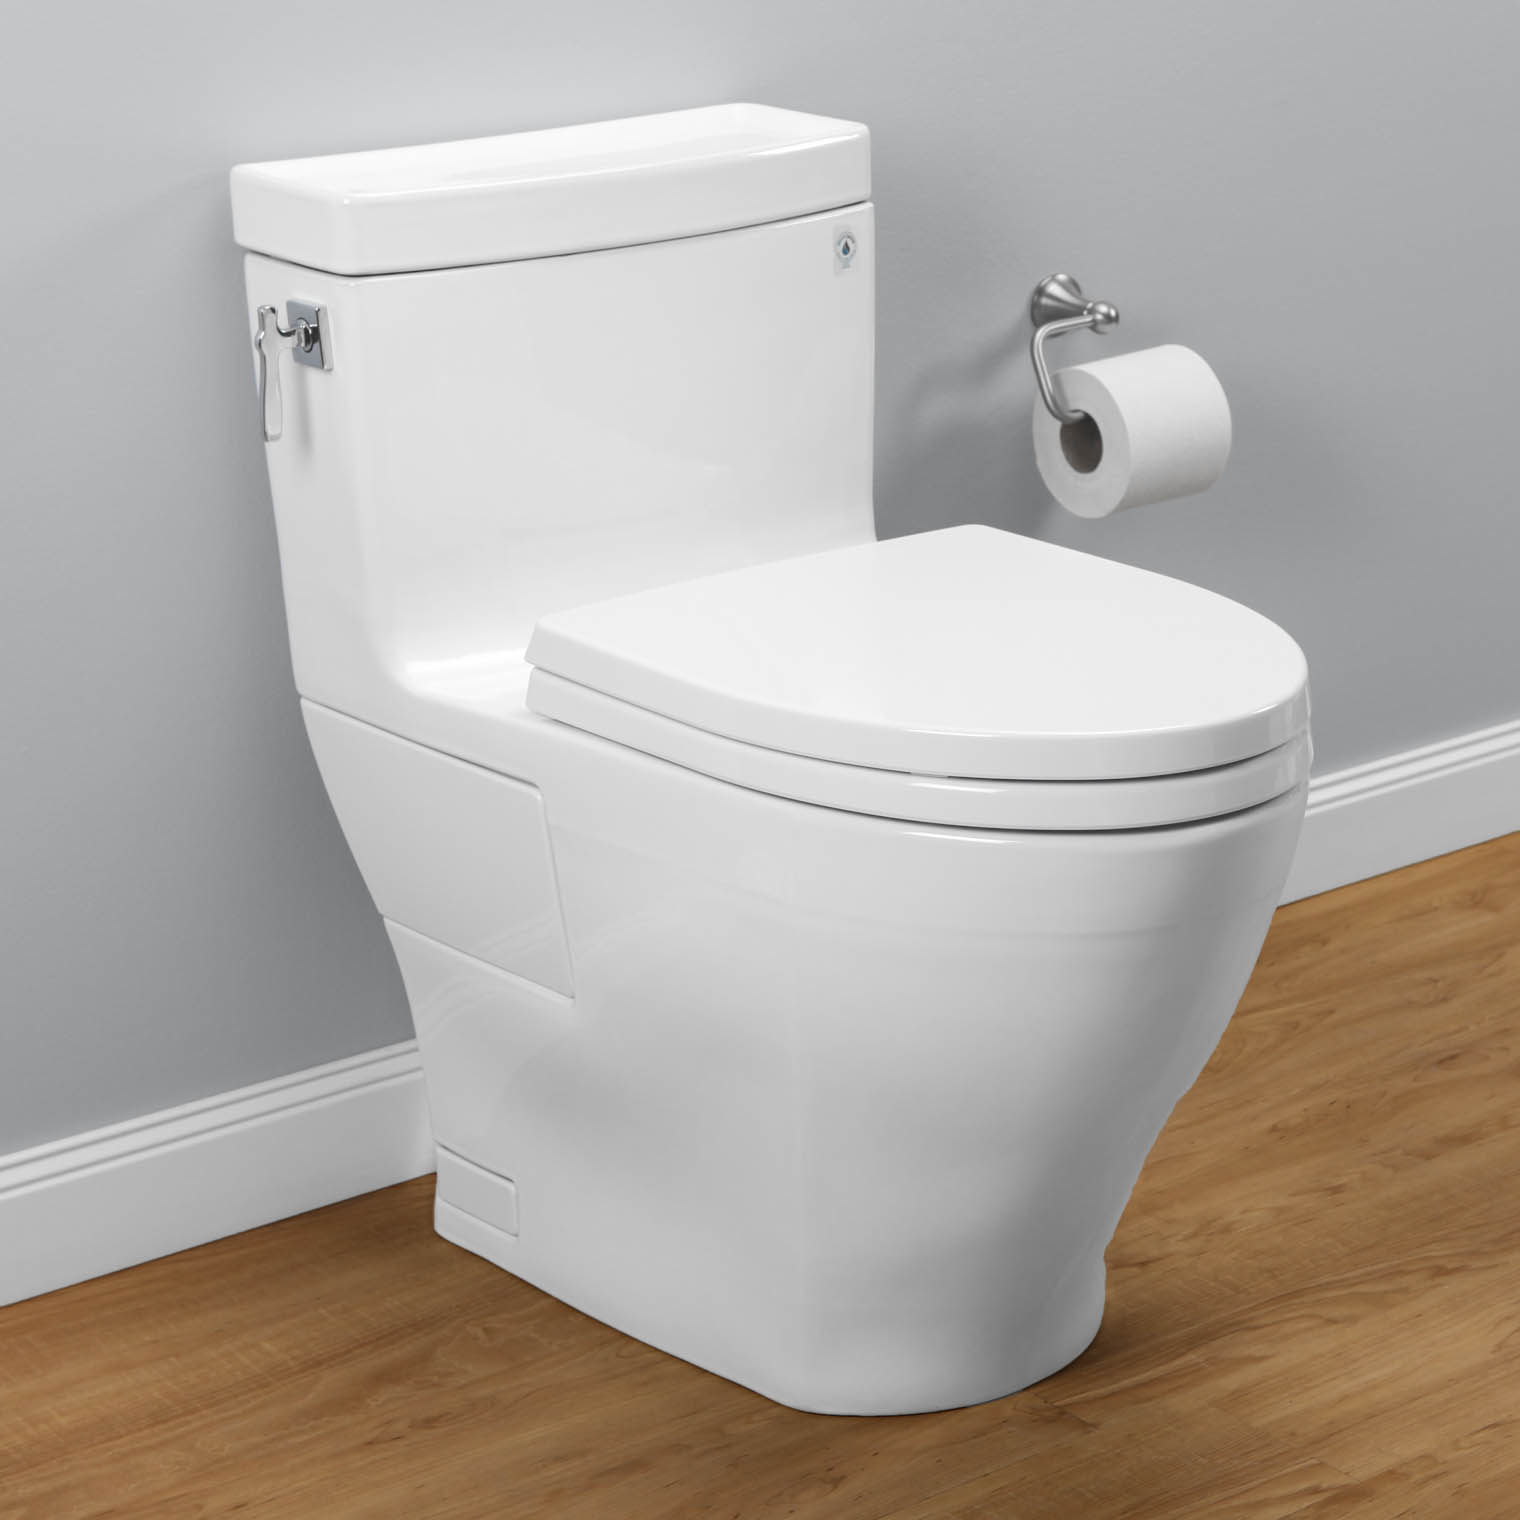 white Toto toilets MS626214CEFG 01 on wooden floor matched with grey wall plus white baseboard molding plus rolled tissue for toilet decor ideas